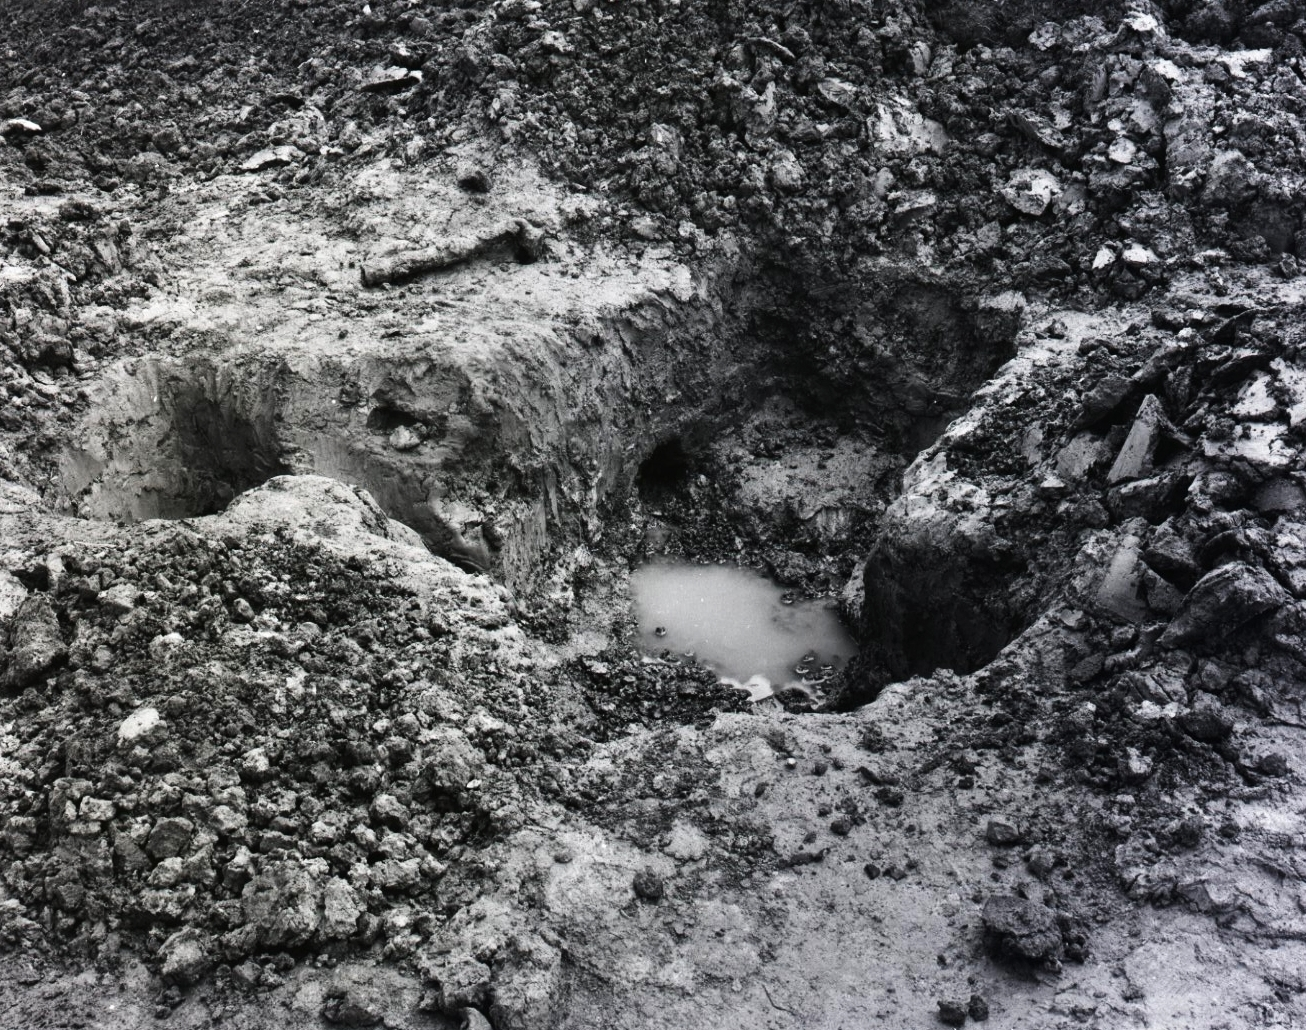 Excavated Grave, International Trench, Ypres